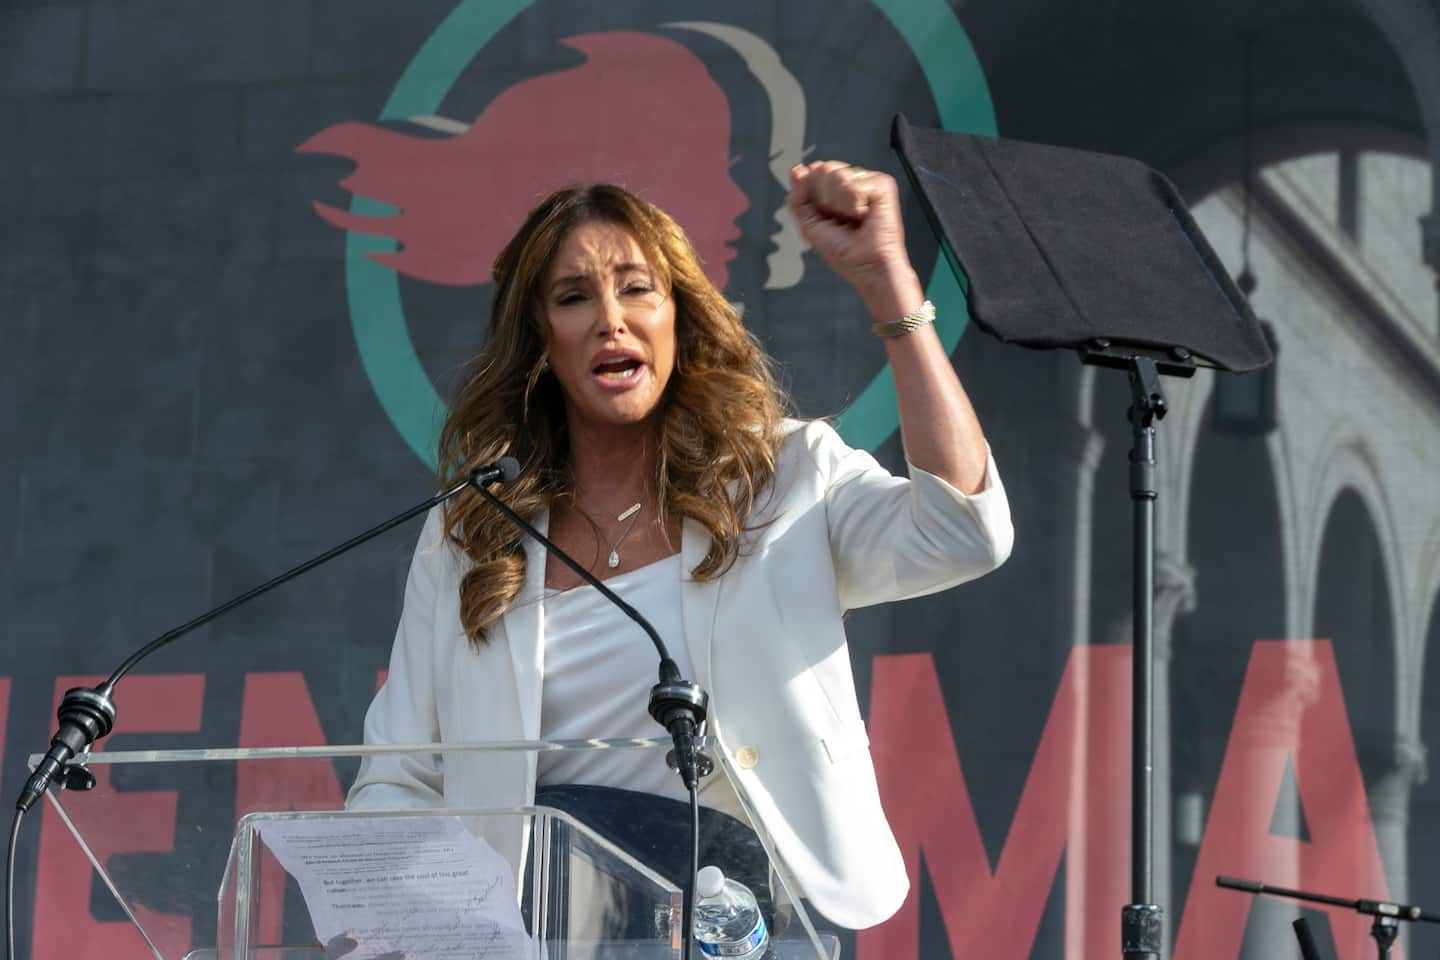 Caitlyn Jenner announces plans to run for governor of California